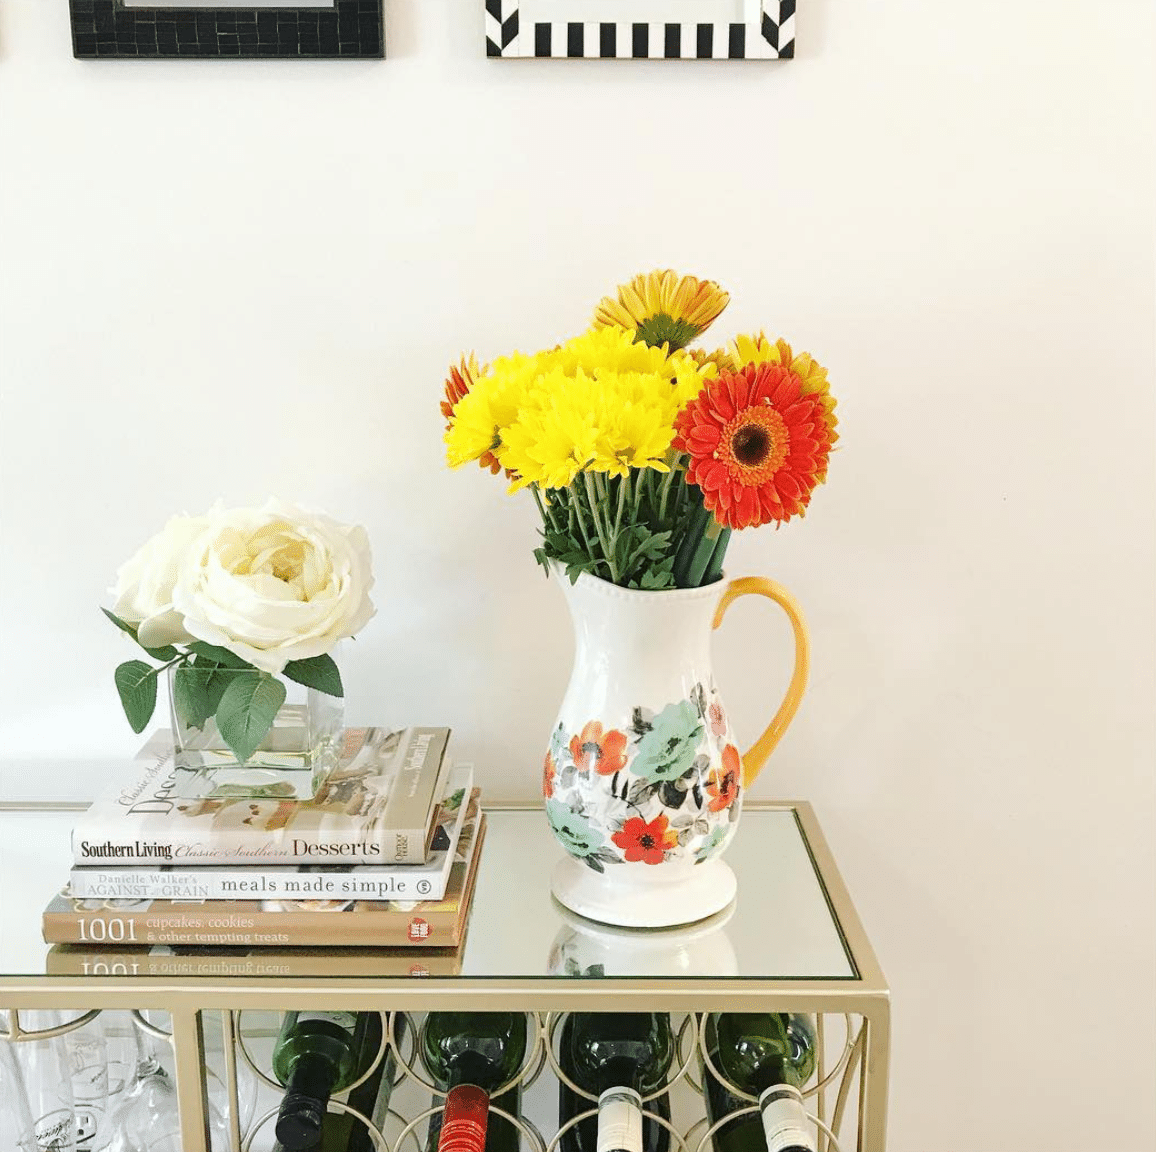 Best Uses for ACRYLIC BAR CARTS